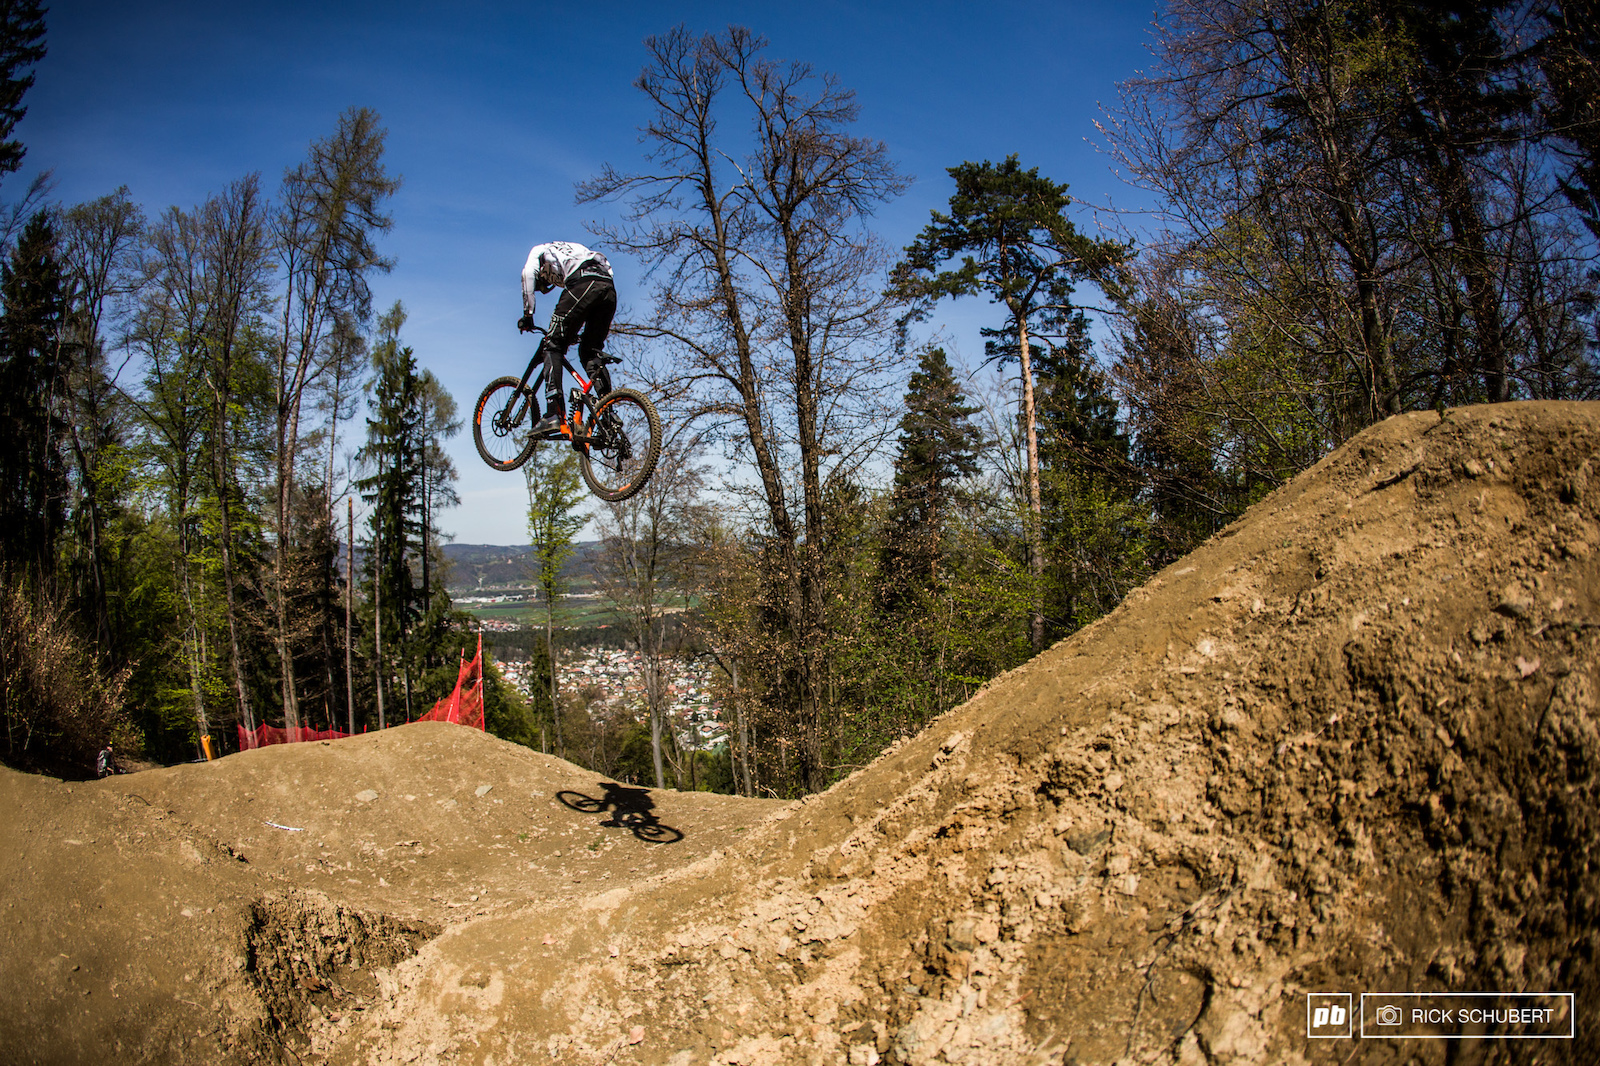 There were some fresh man-made sections with some massive jumps